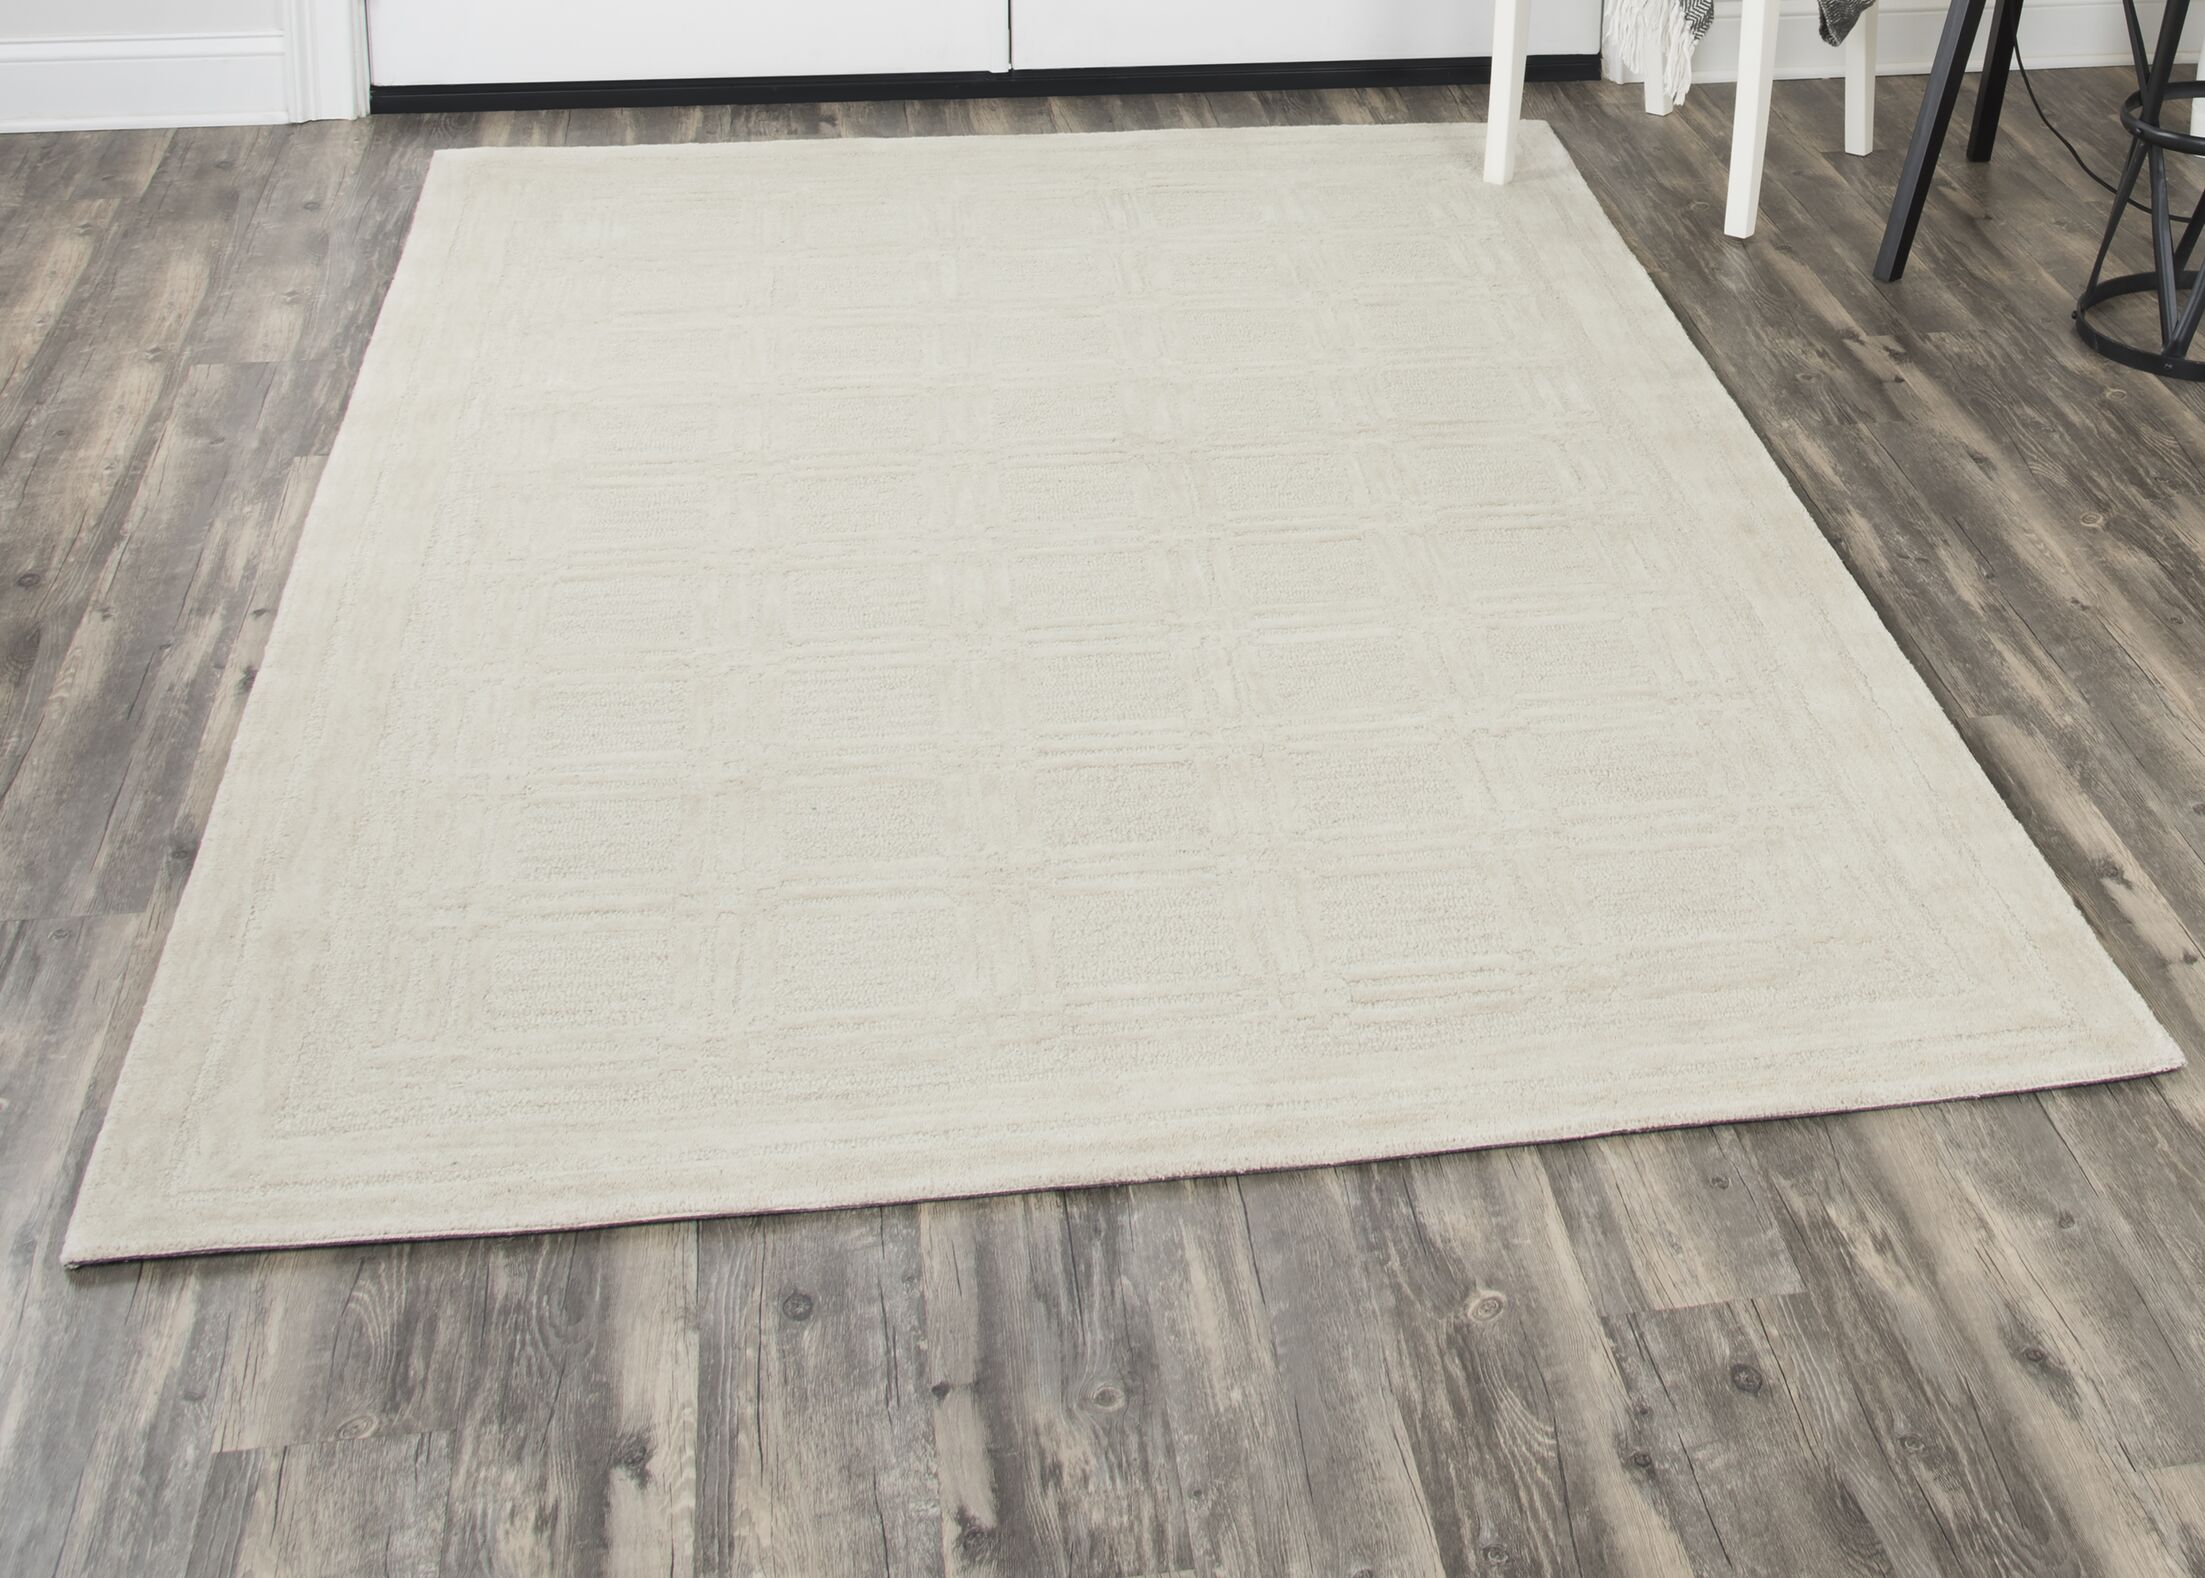 Phan Hand-Tufted Wool Beige Area Rug Rug Size: Rectangle10' x 13'